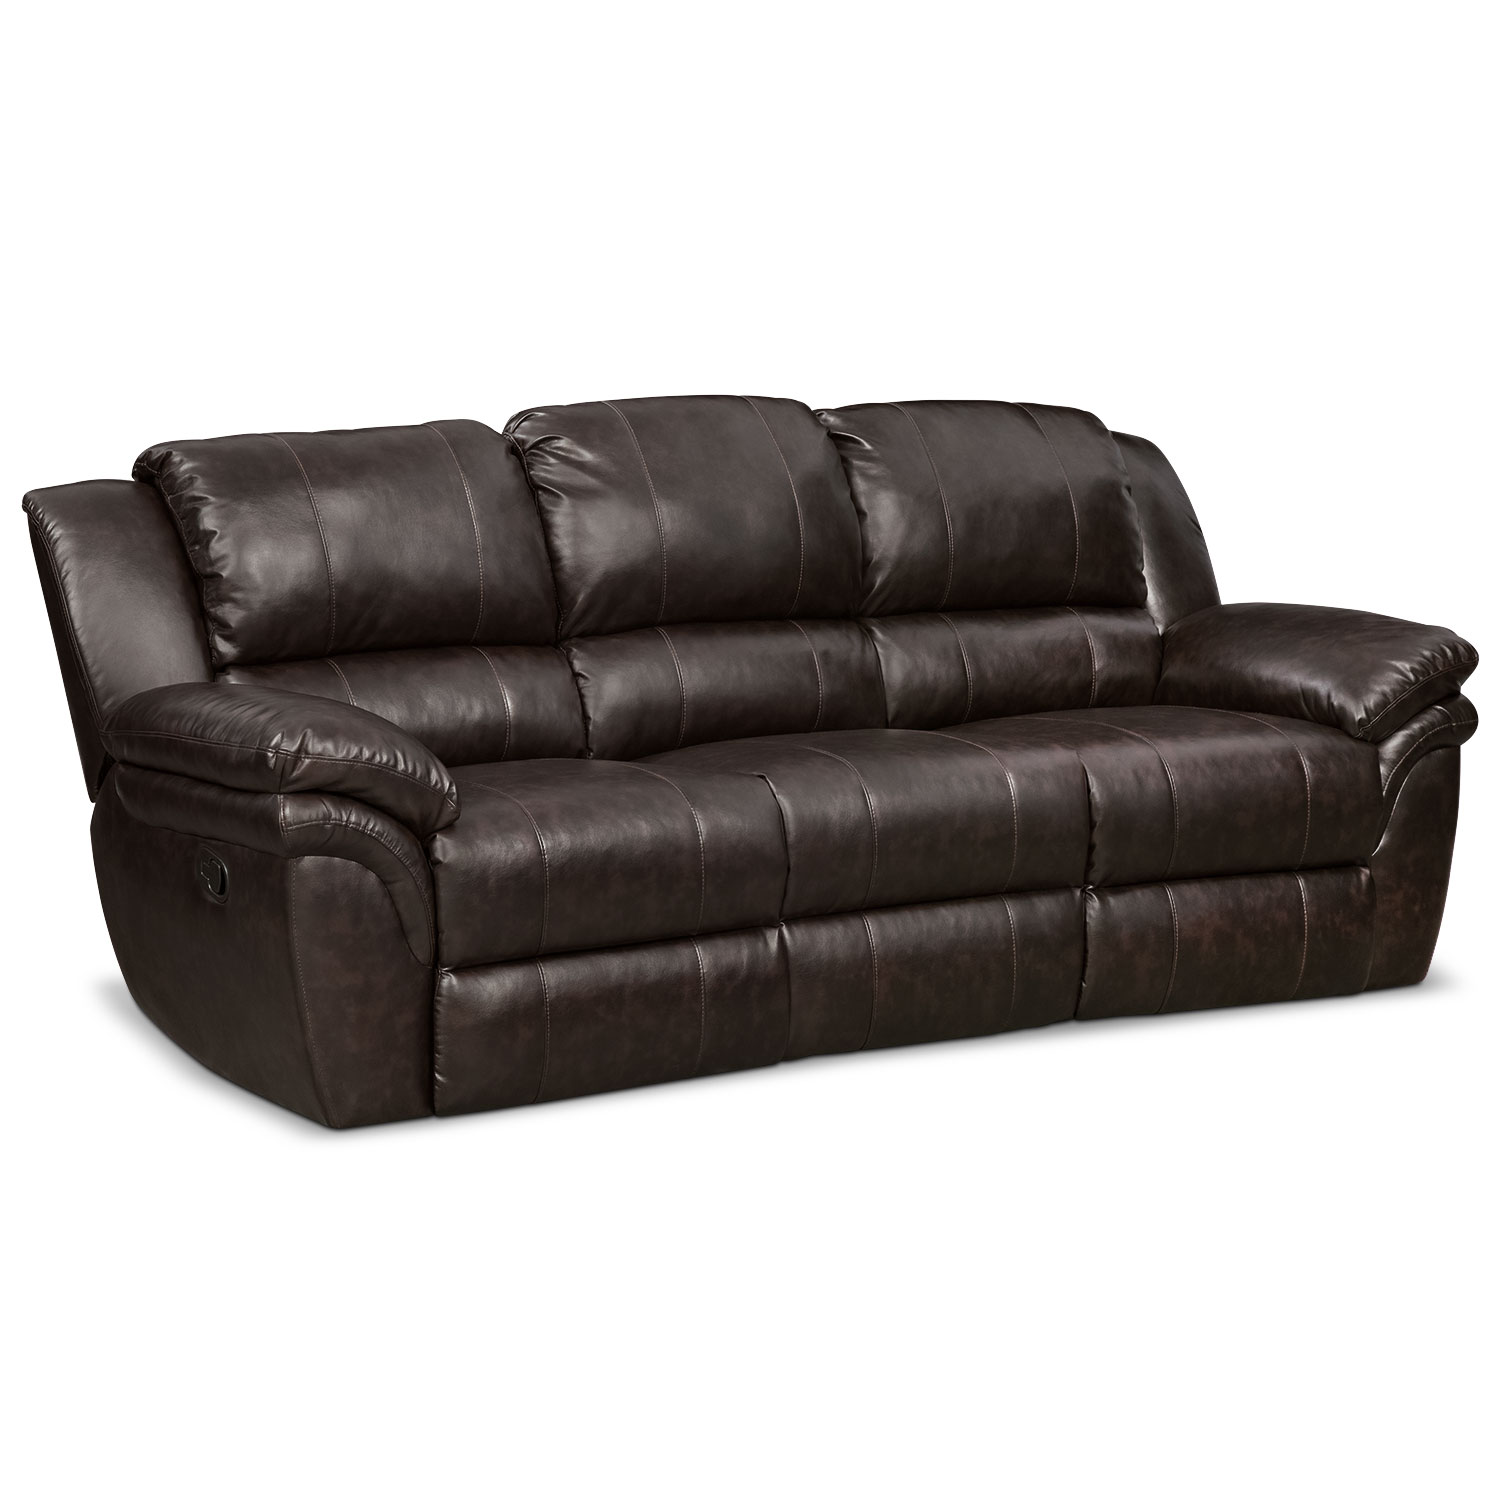 Living Room Furniture - Aldo Manual Reclining Sofa